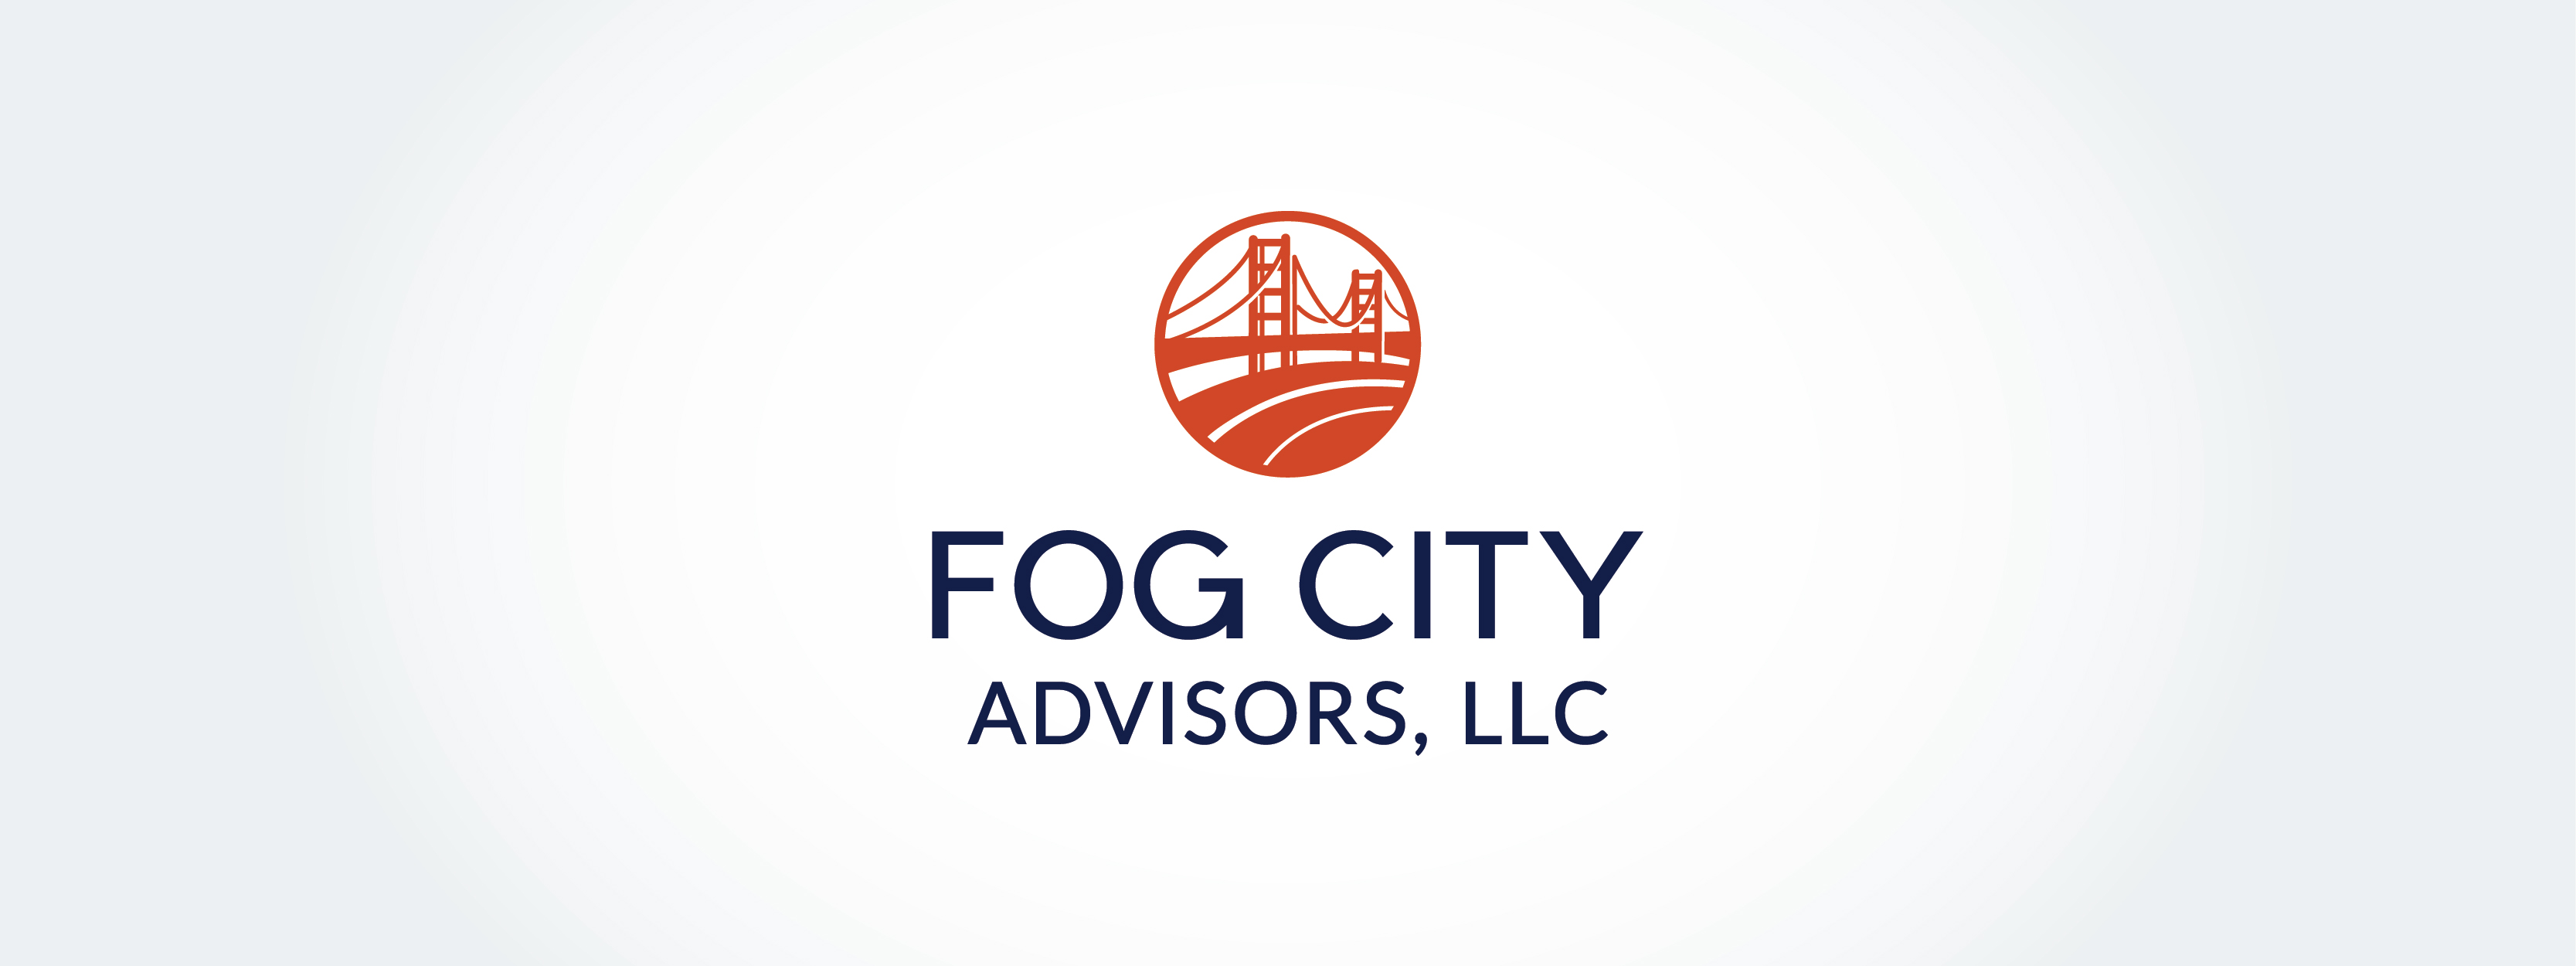 Fog City Advisors LLC logo Featured Image